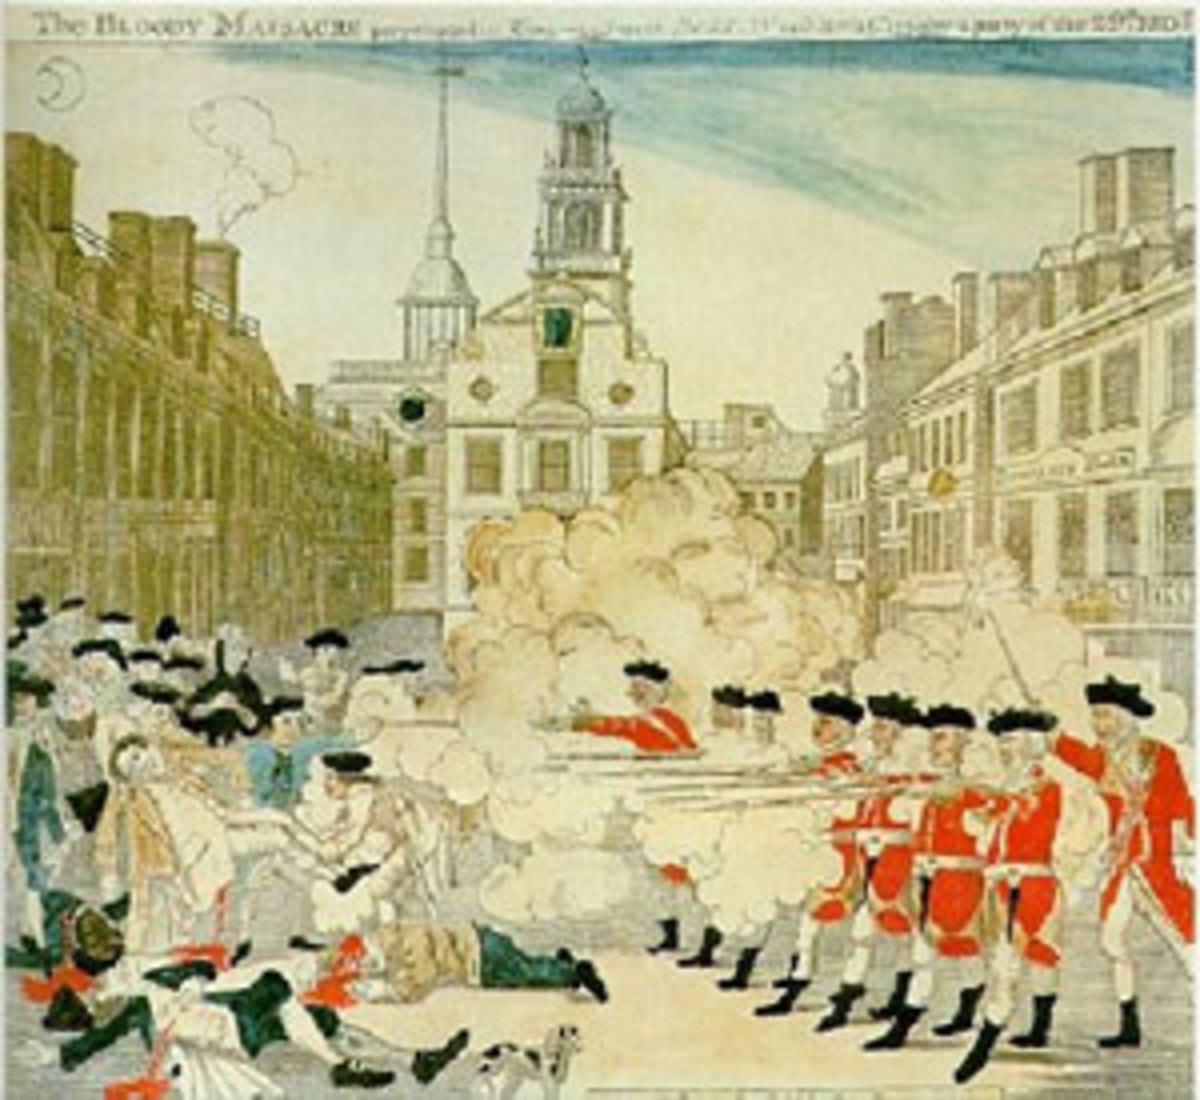 I'm sure the British lined Bostonians up and started shooting just like this during the Boston Massacre. Evil Brits!!